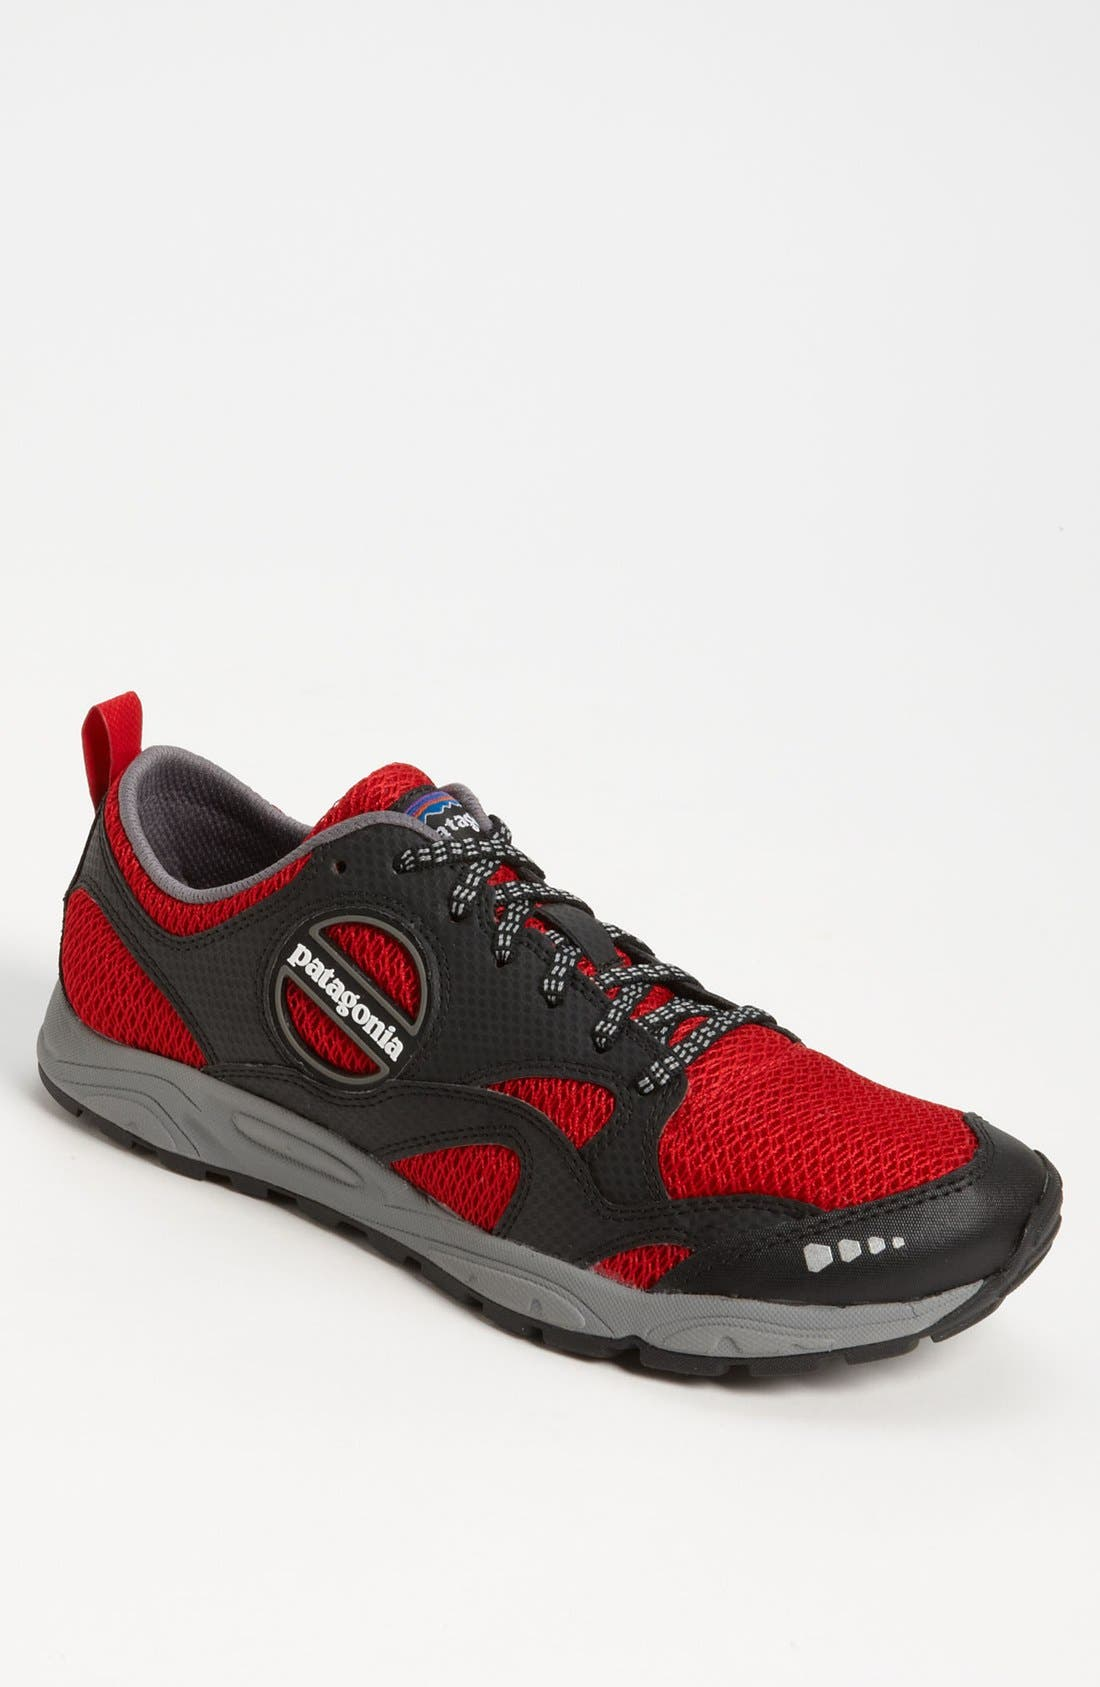 Main Image - Patagonia 'EVERmore' Trail Running Shoe (Men)